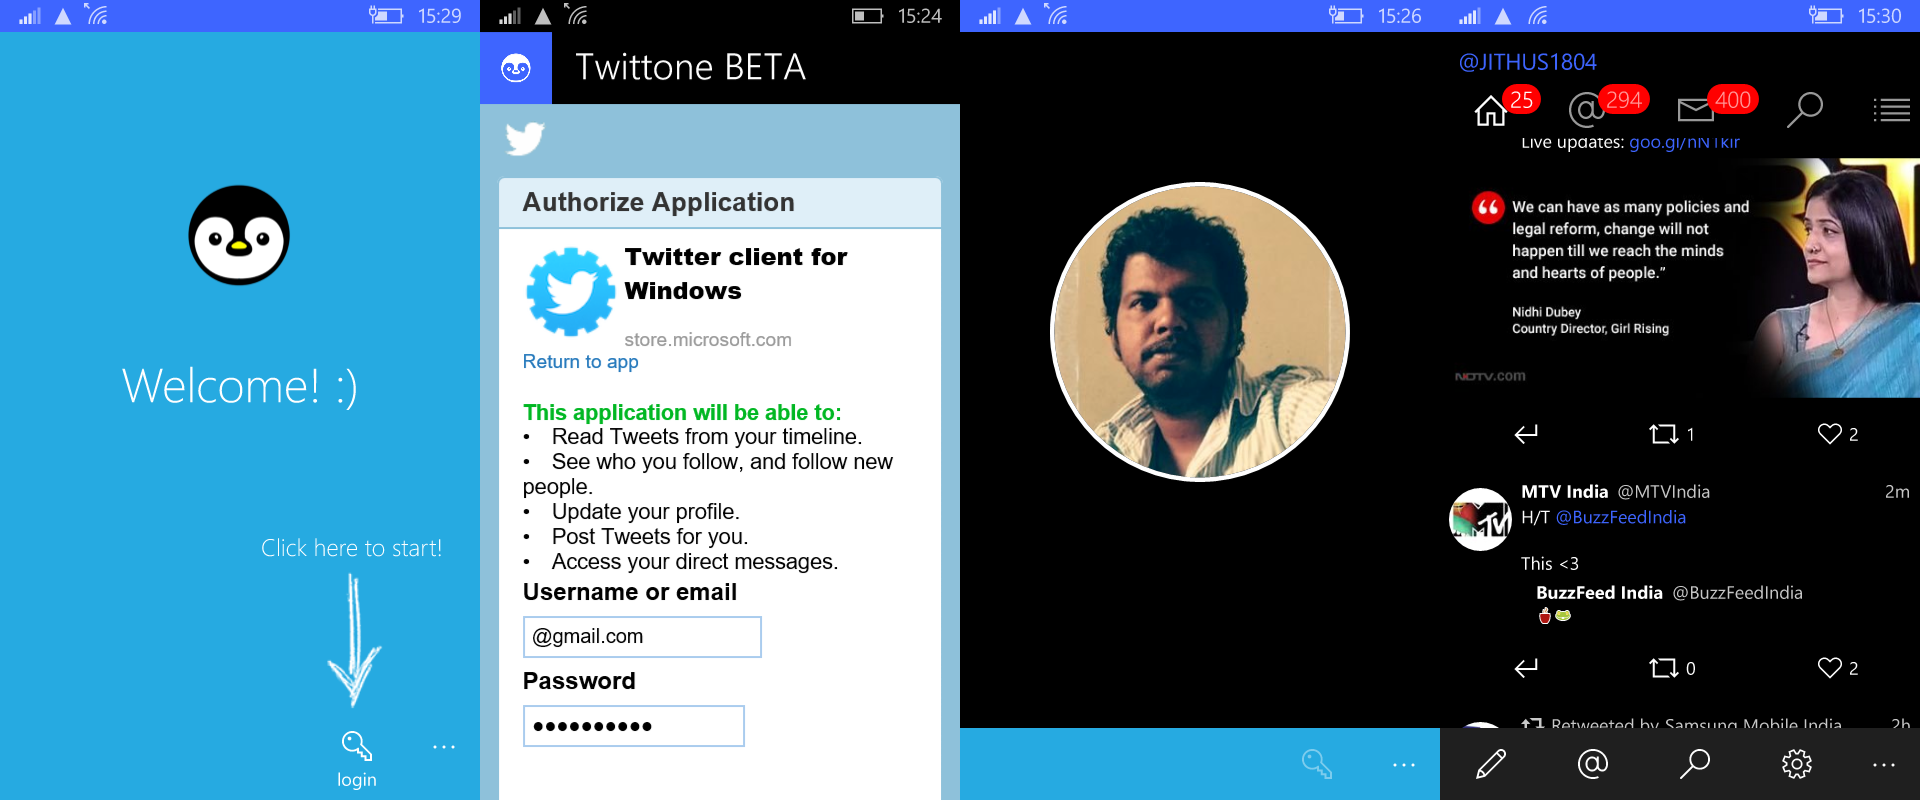 Hands On with Twittone - The fastest #twitter client for